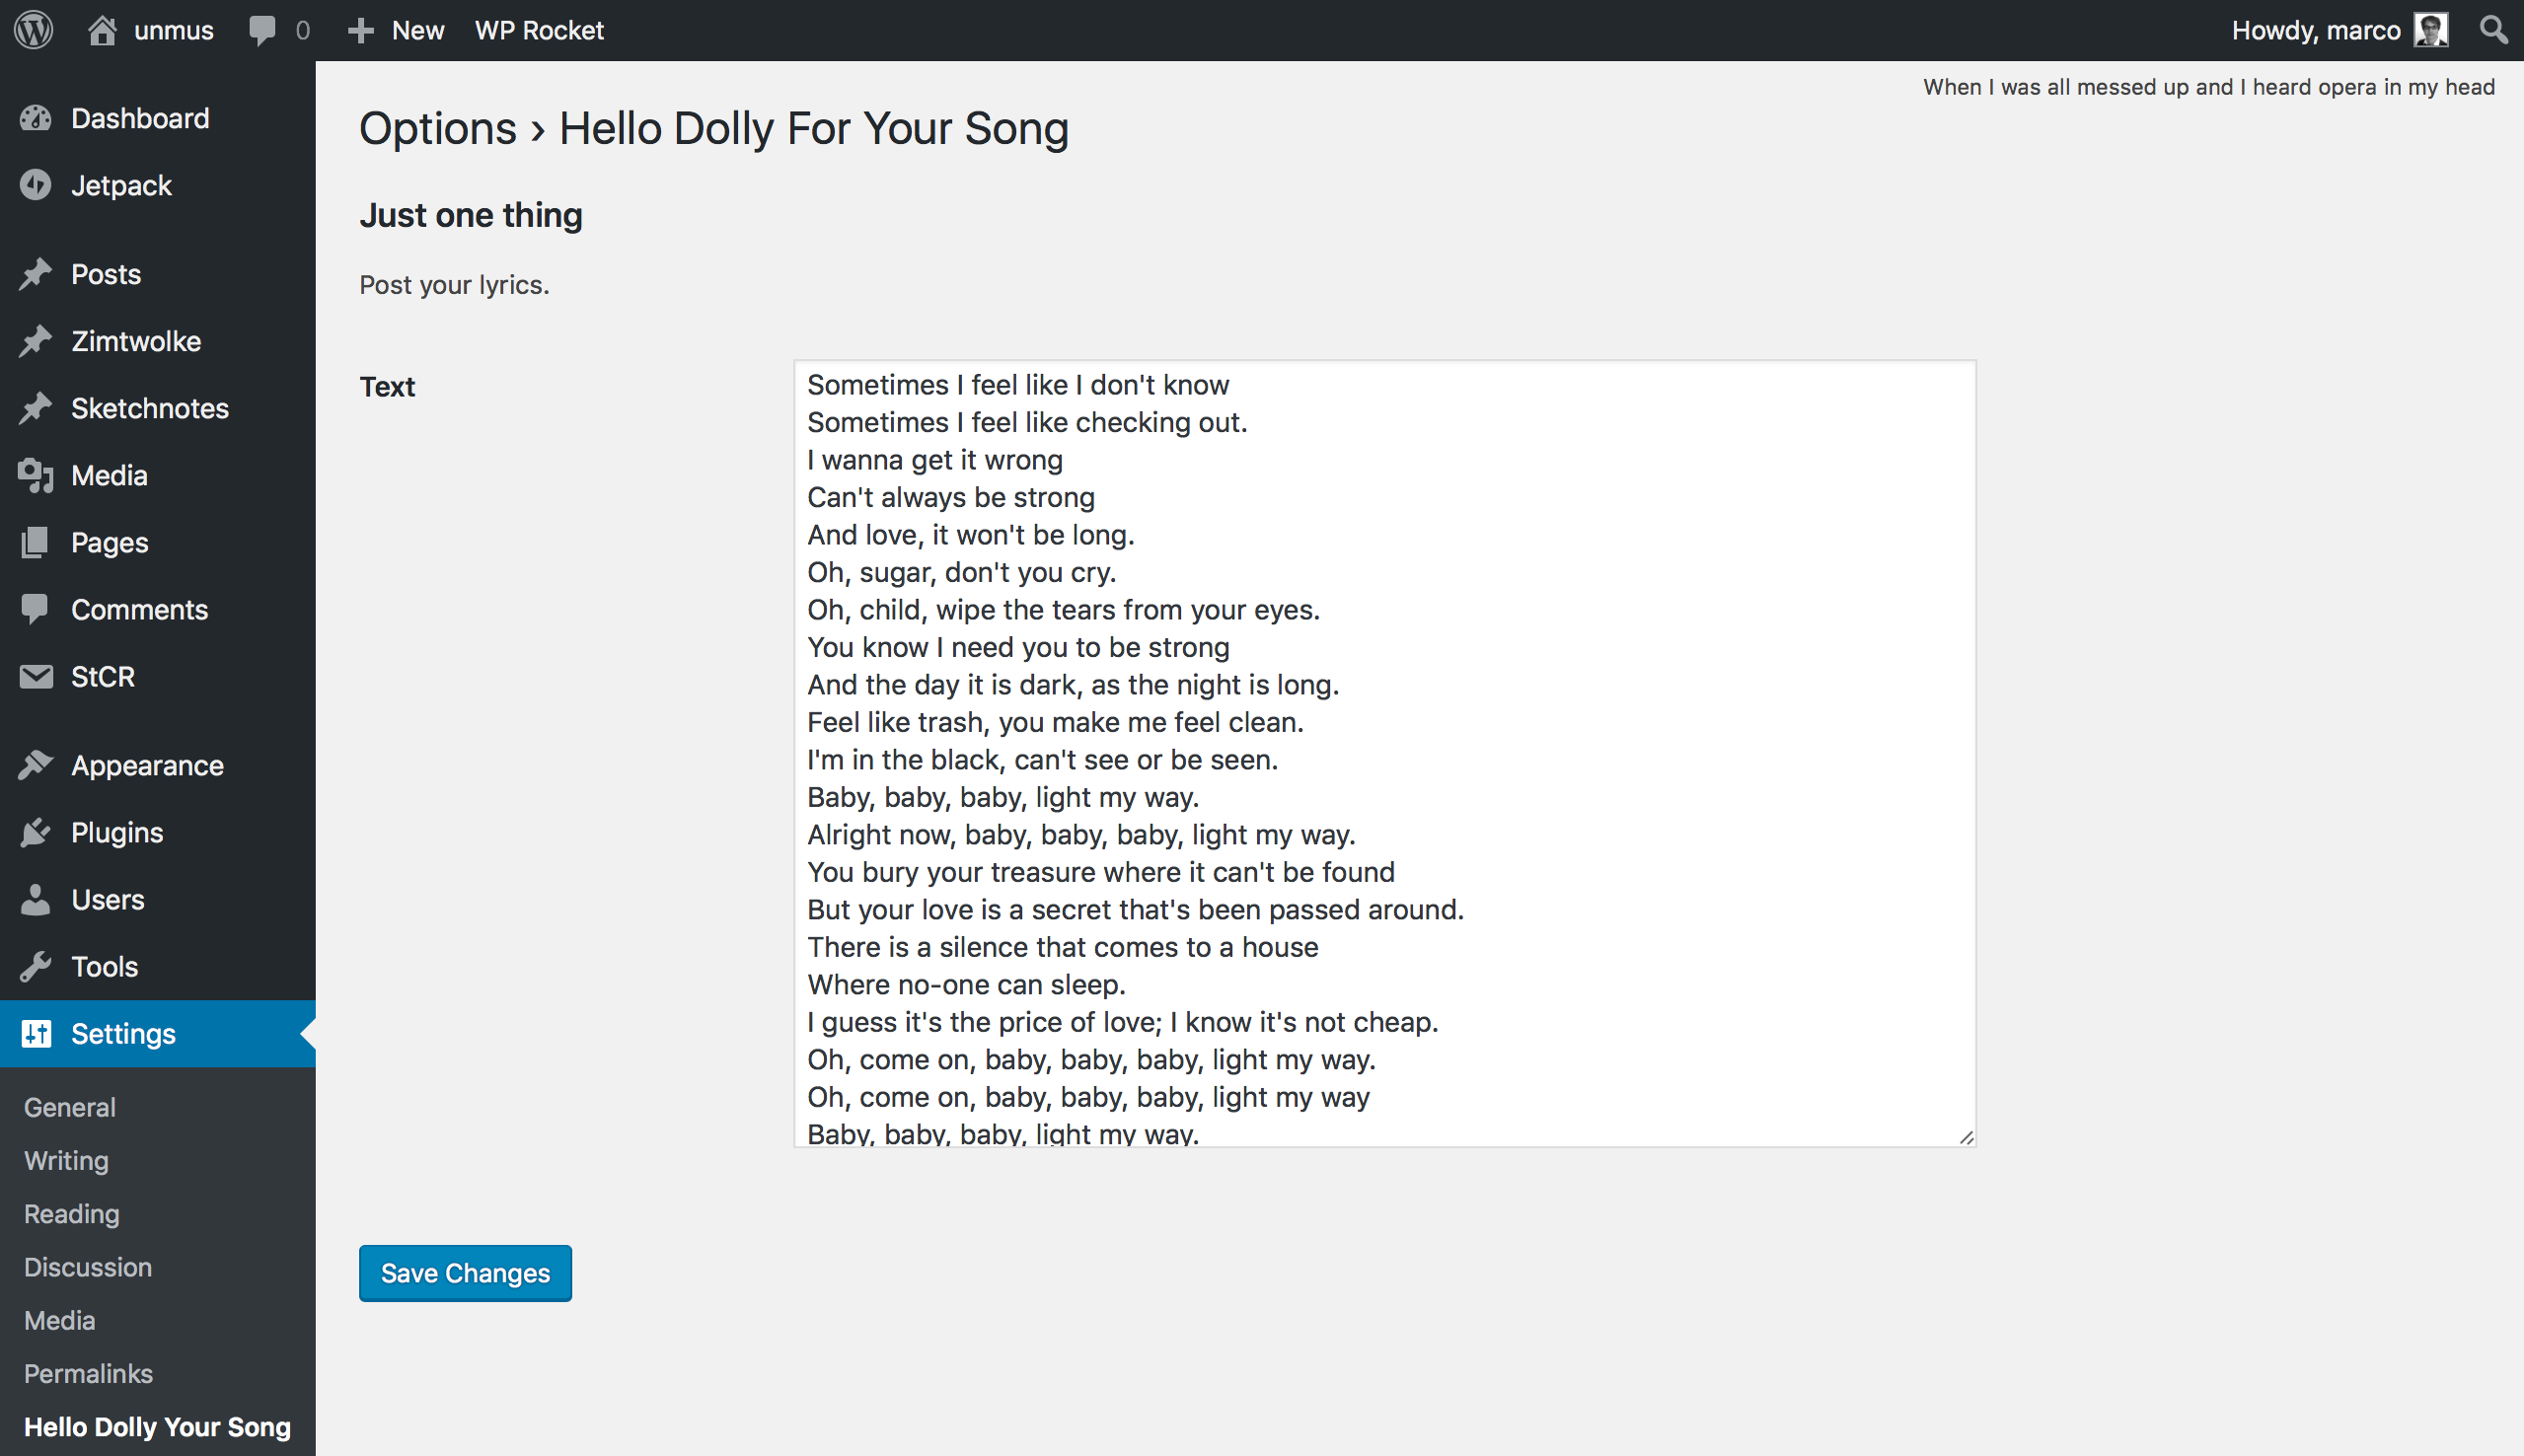 Display songtext in the admin head